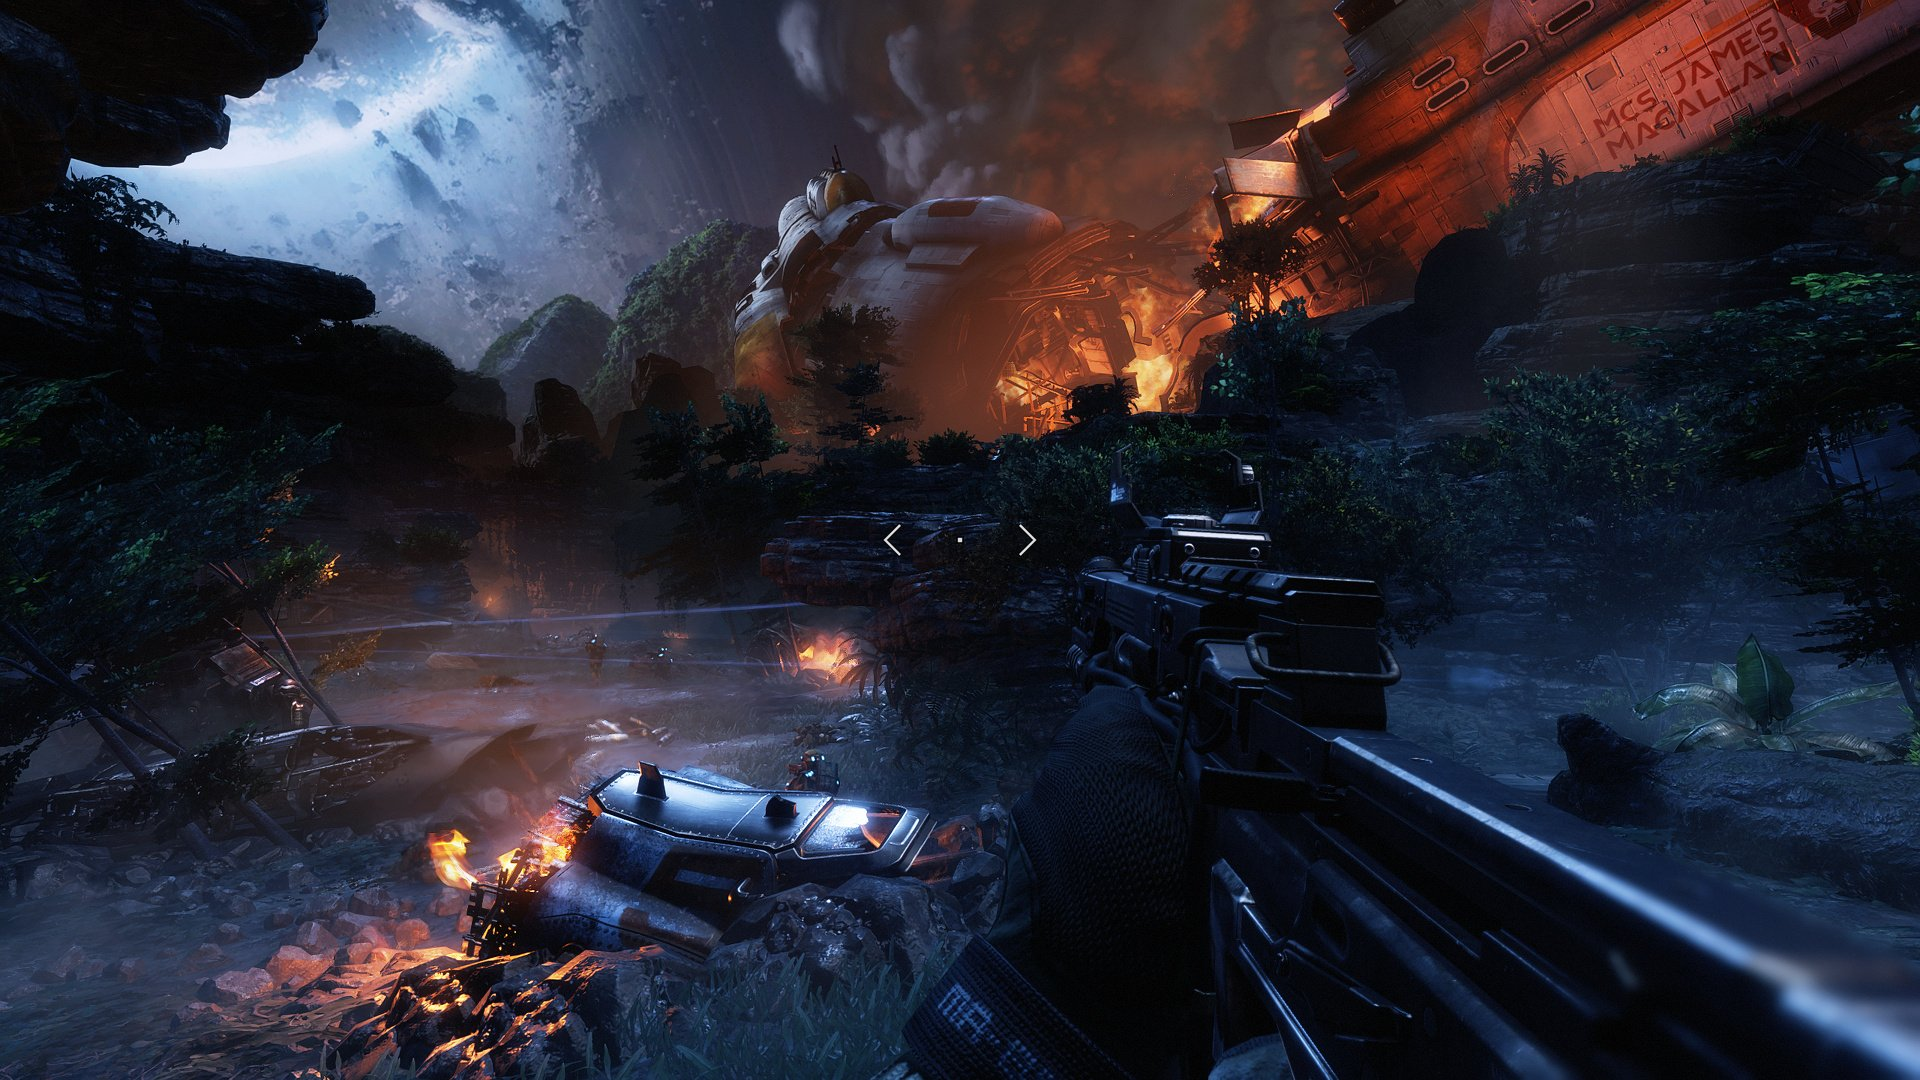 Good God Titanfall 2 Looks Glorious In 1080p On Ps4 Pro